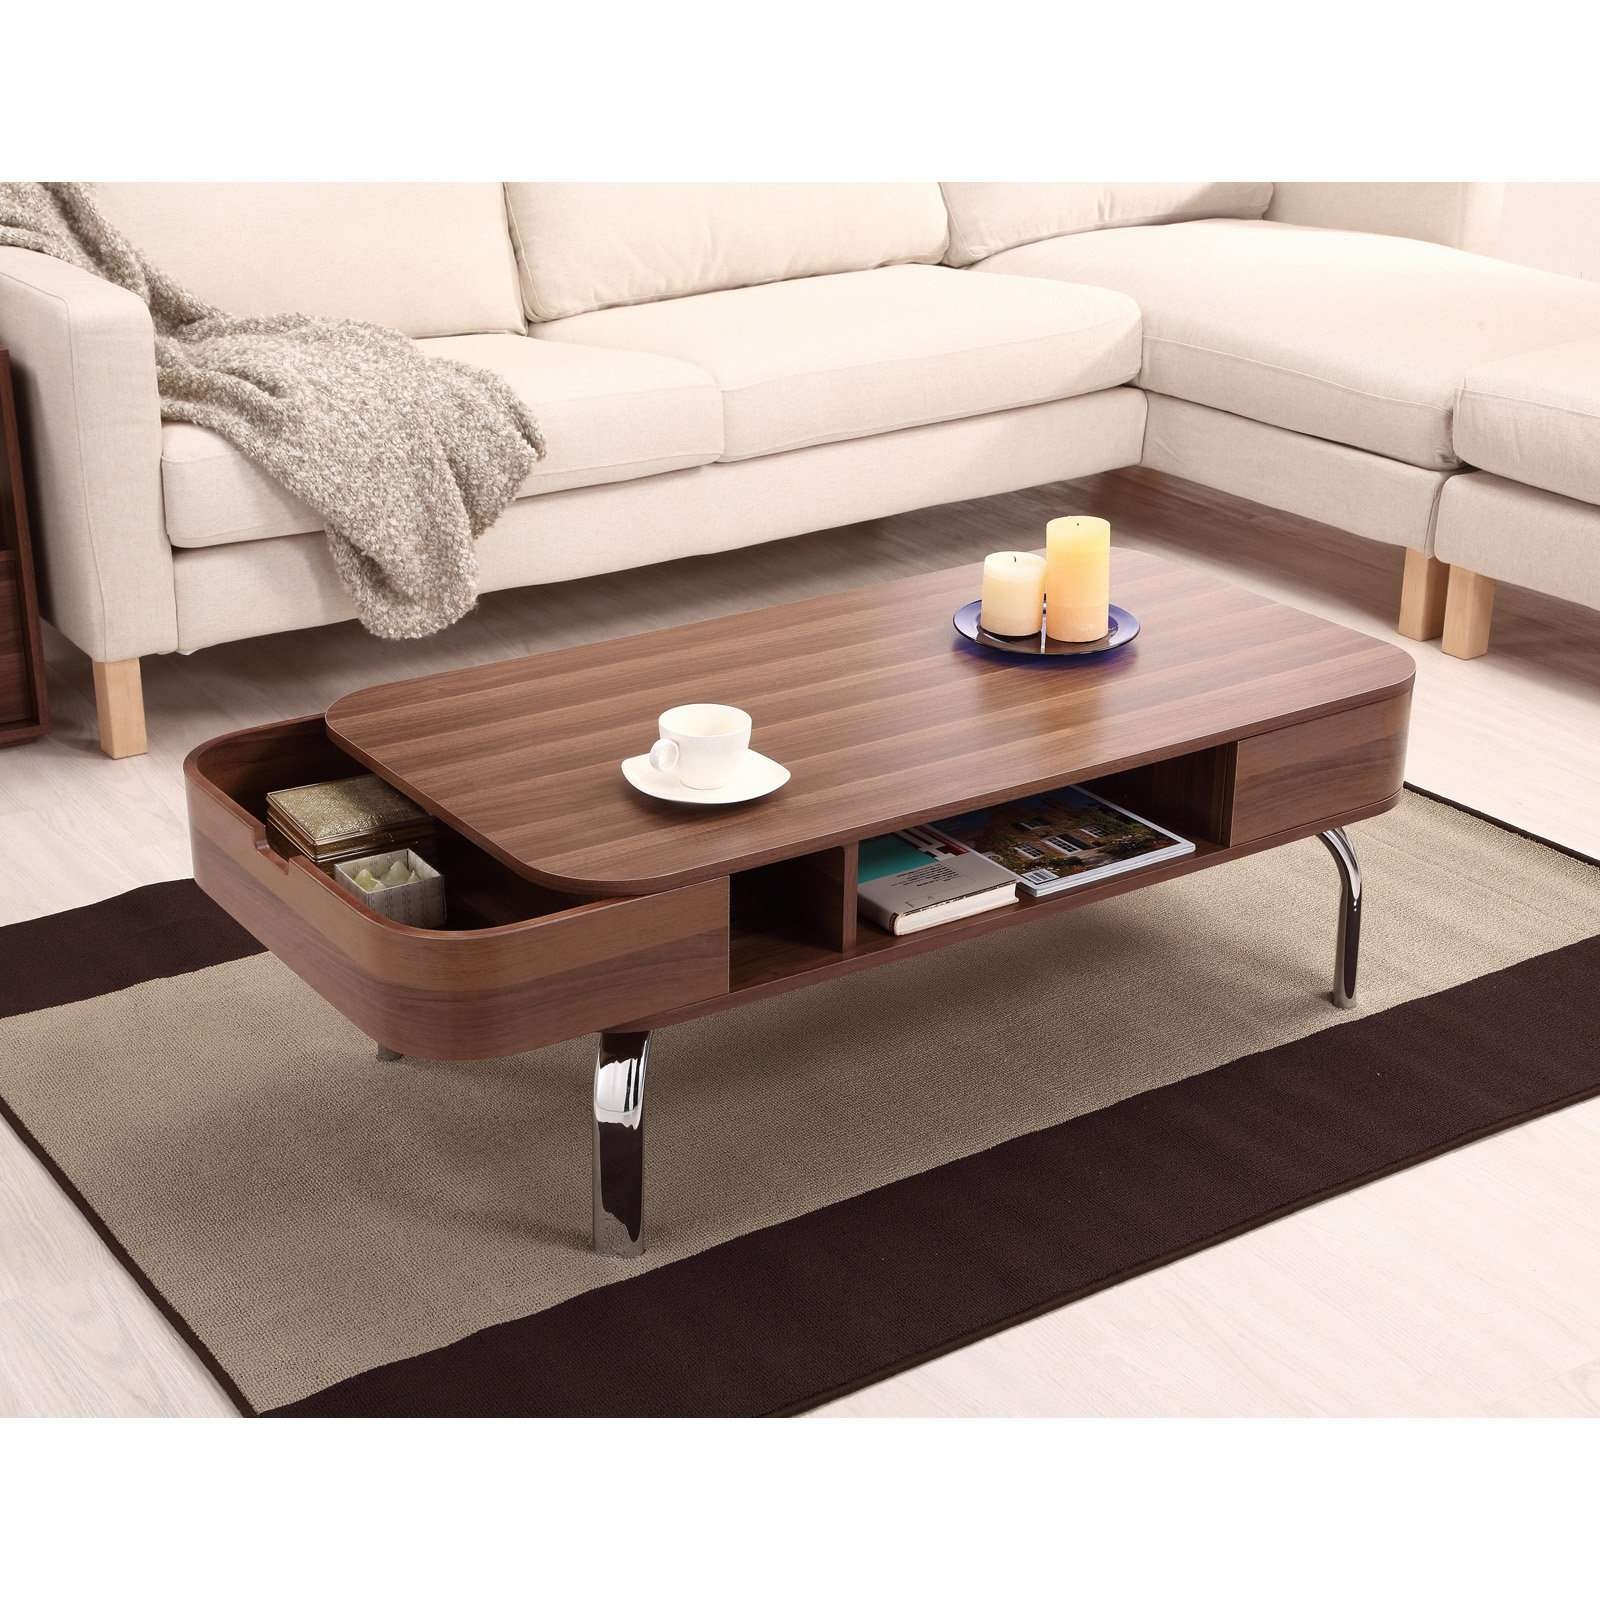 Most Current Modern Coffee Tables With Storage With Furniture Of America Lawson Modern Walnut 2 Drawer Coffee Table (View 12 of 20)